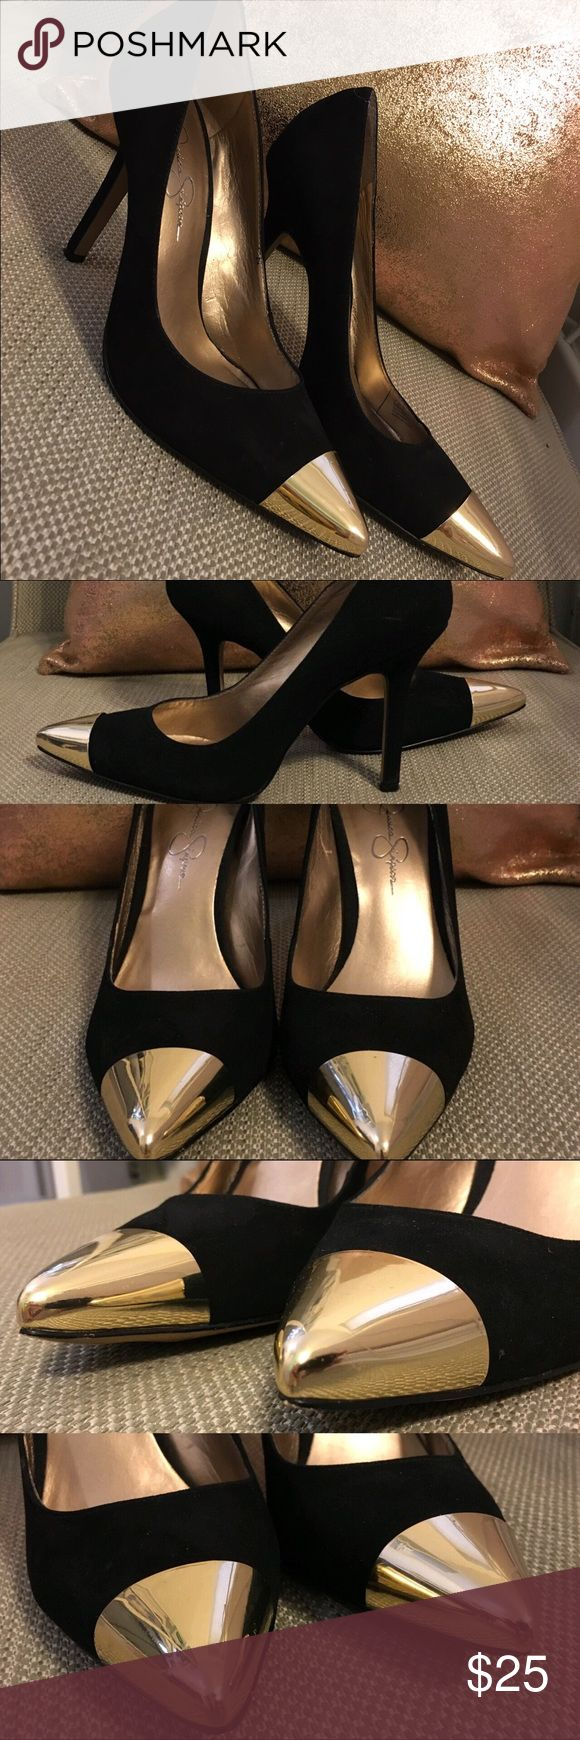 "Jessica Simpson gold toe pumps Jessica Simpson gold cap toe, black pumps. Faux suede. I've worn them 3 times. Heel height is 4.25"". No damage to shoes or the cap toe. Jessica Simpson Shoes Heels"